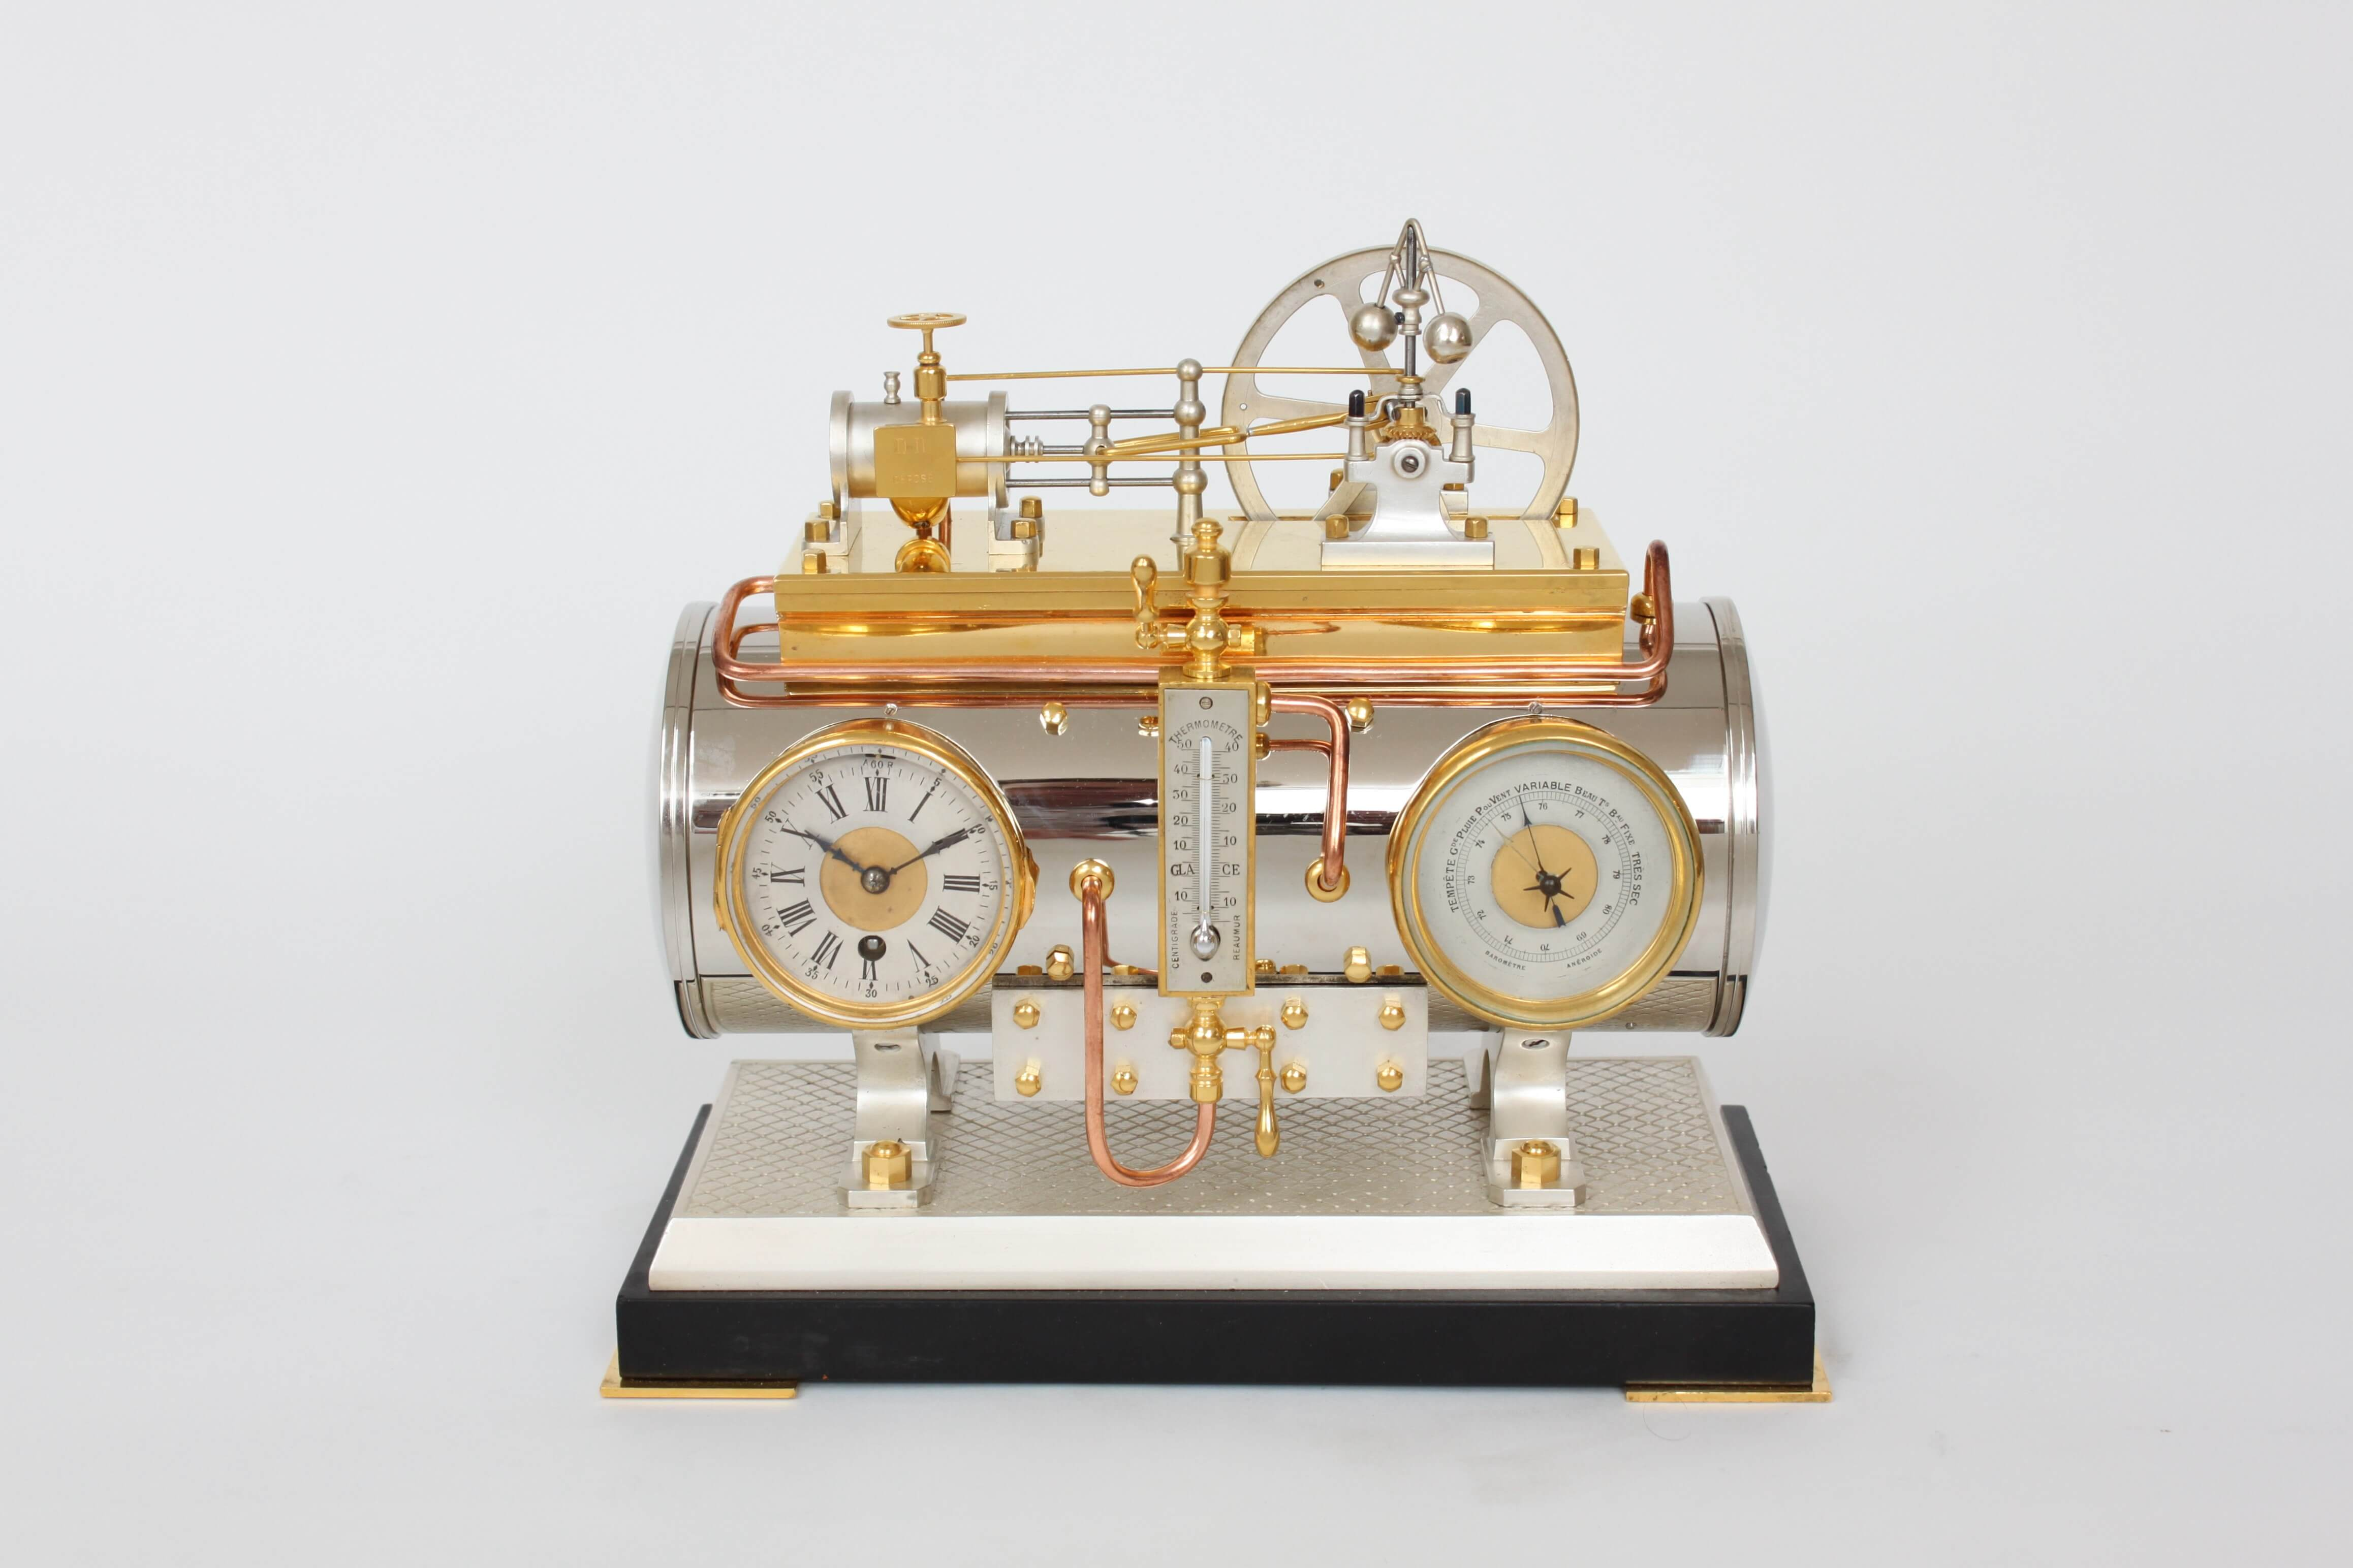 French-industrial-antique-clock-guilmet-boiler-animated-automaton